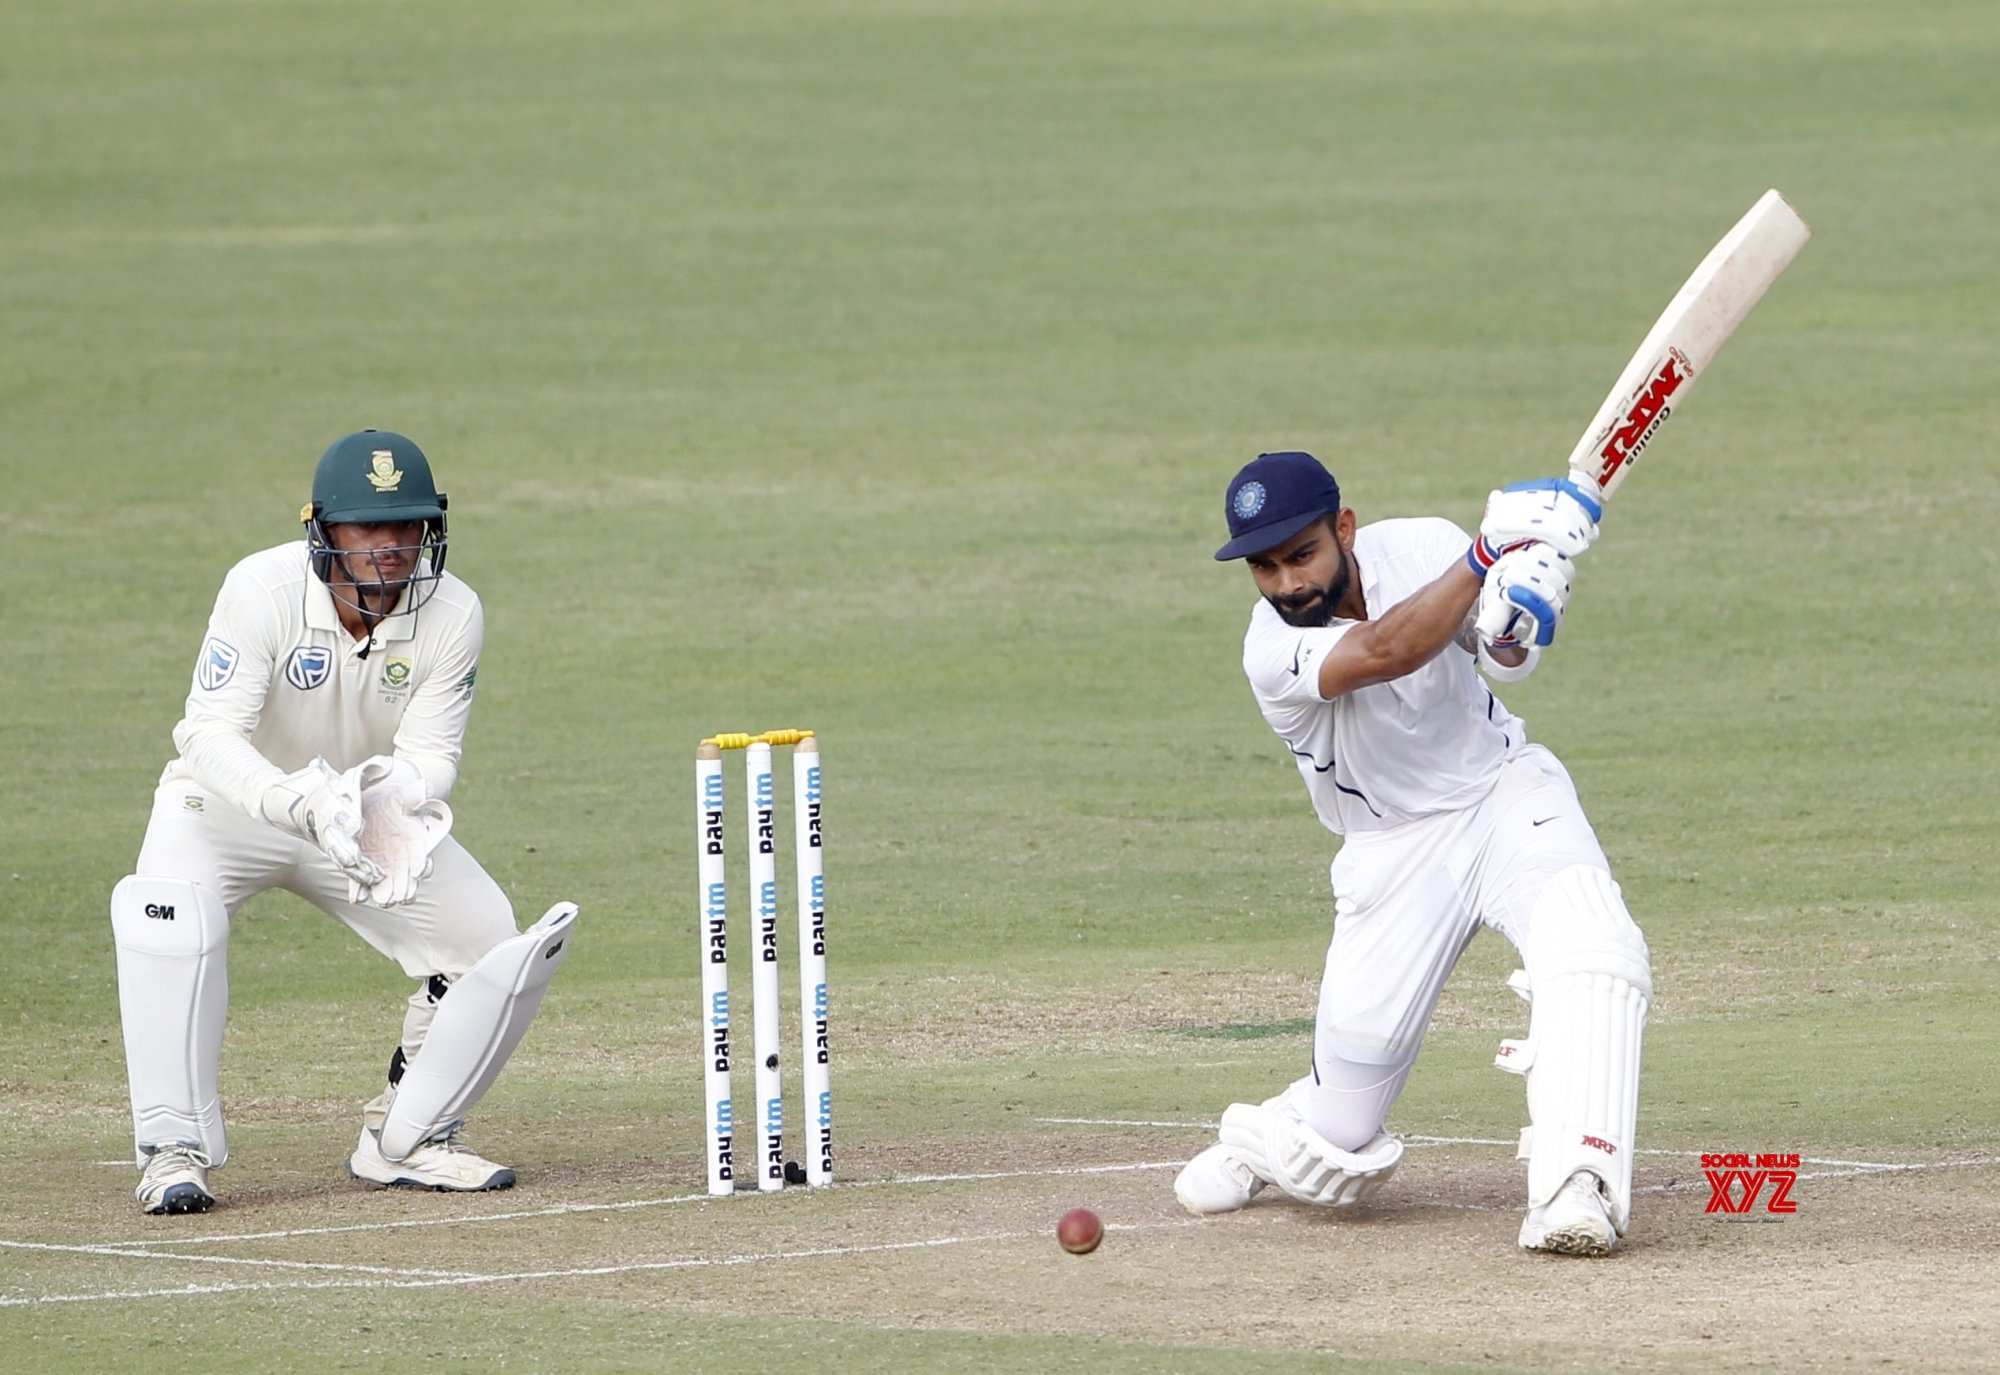 Pune: 2nd Test - India Vs South Africa - Day 2 (Batch - 18) #Gallery